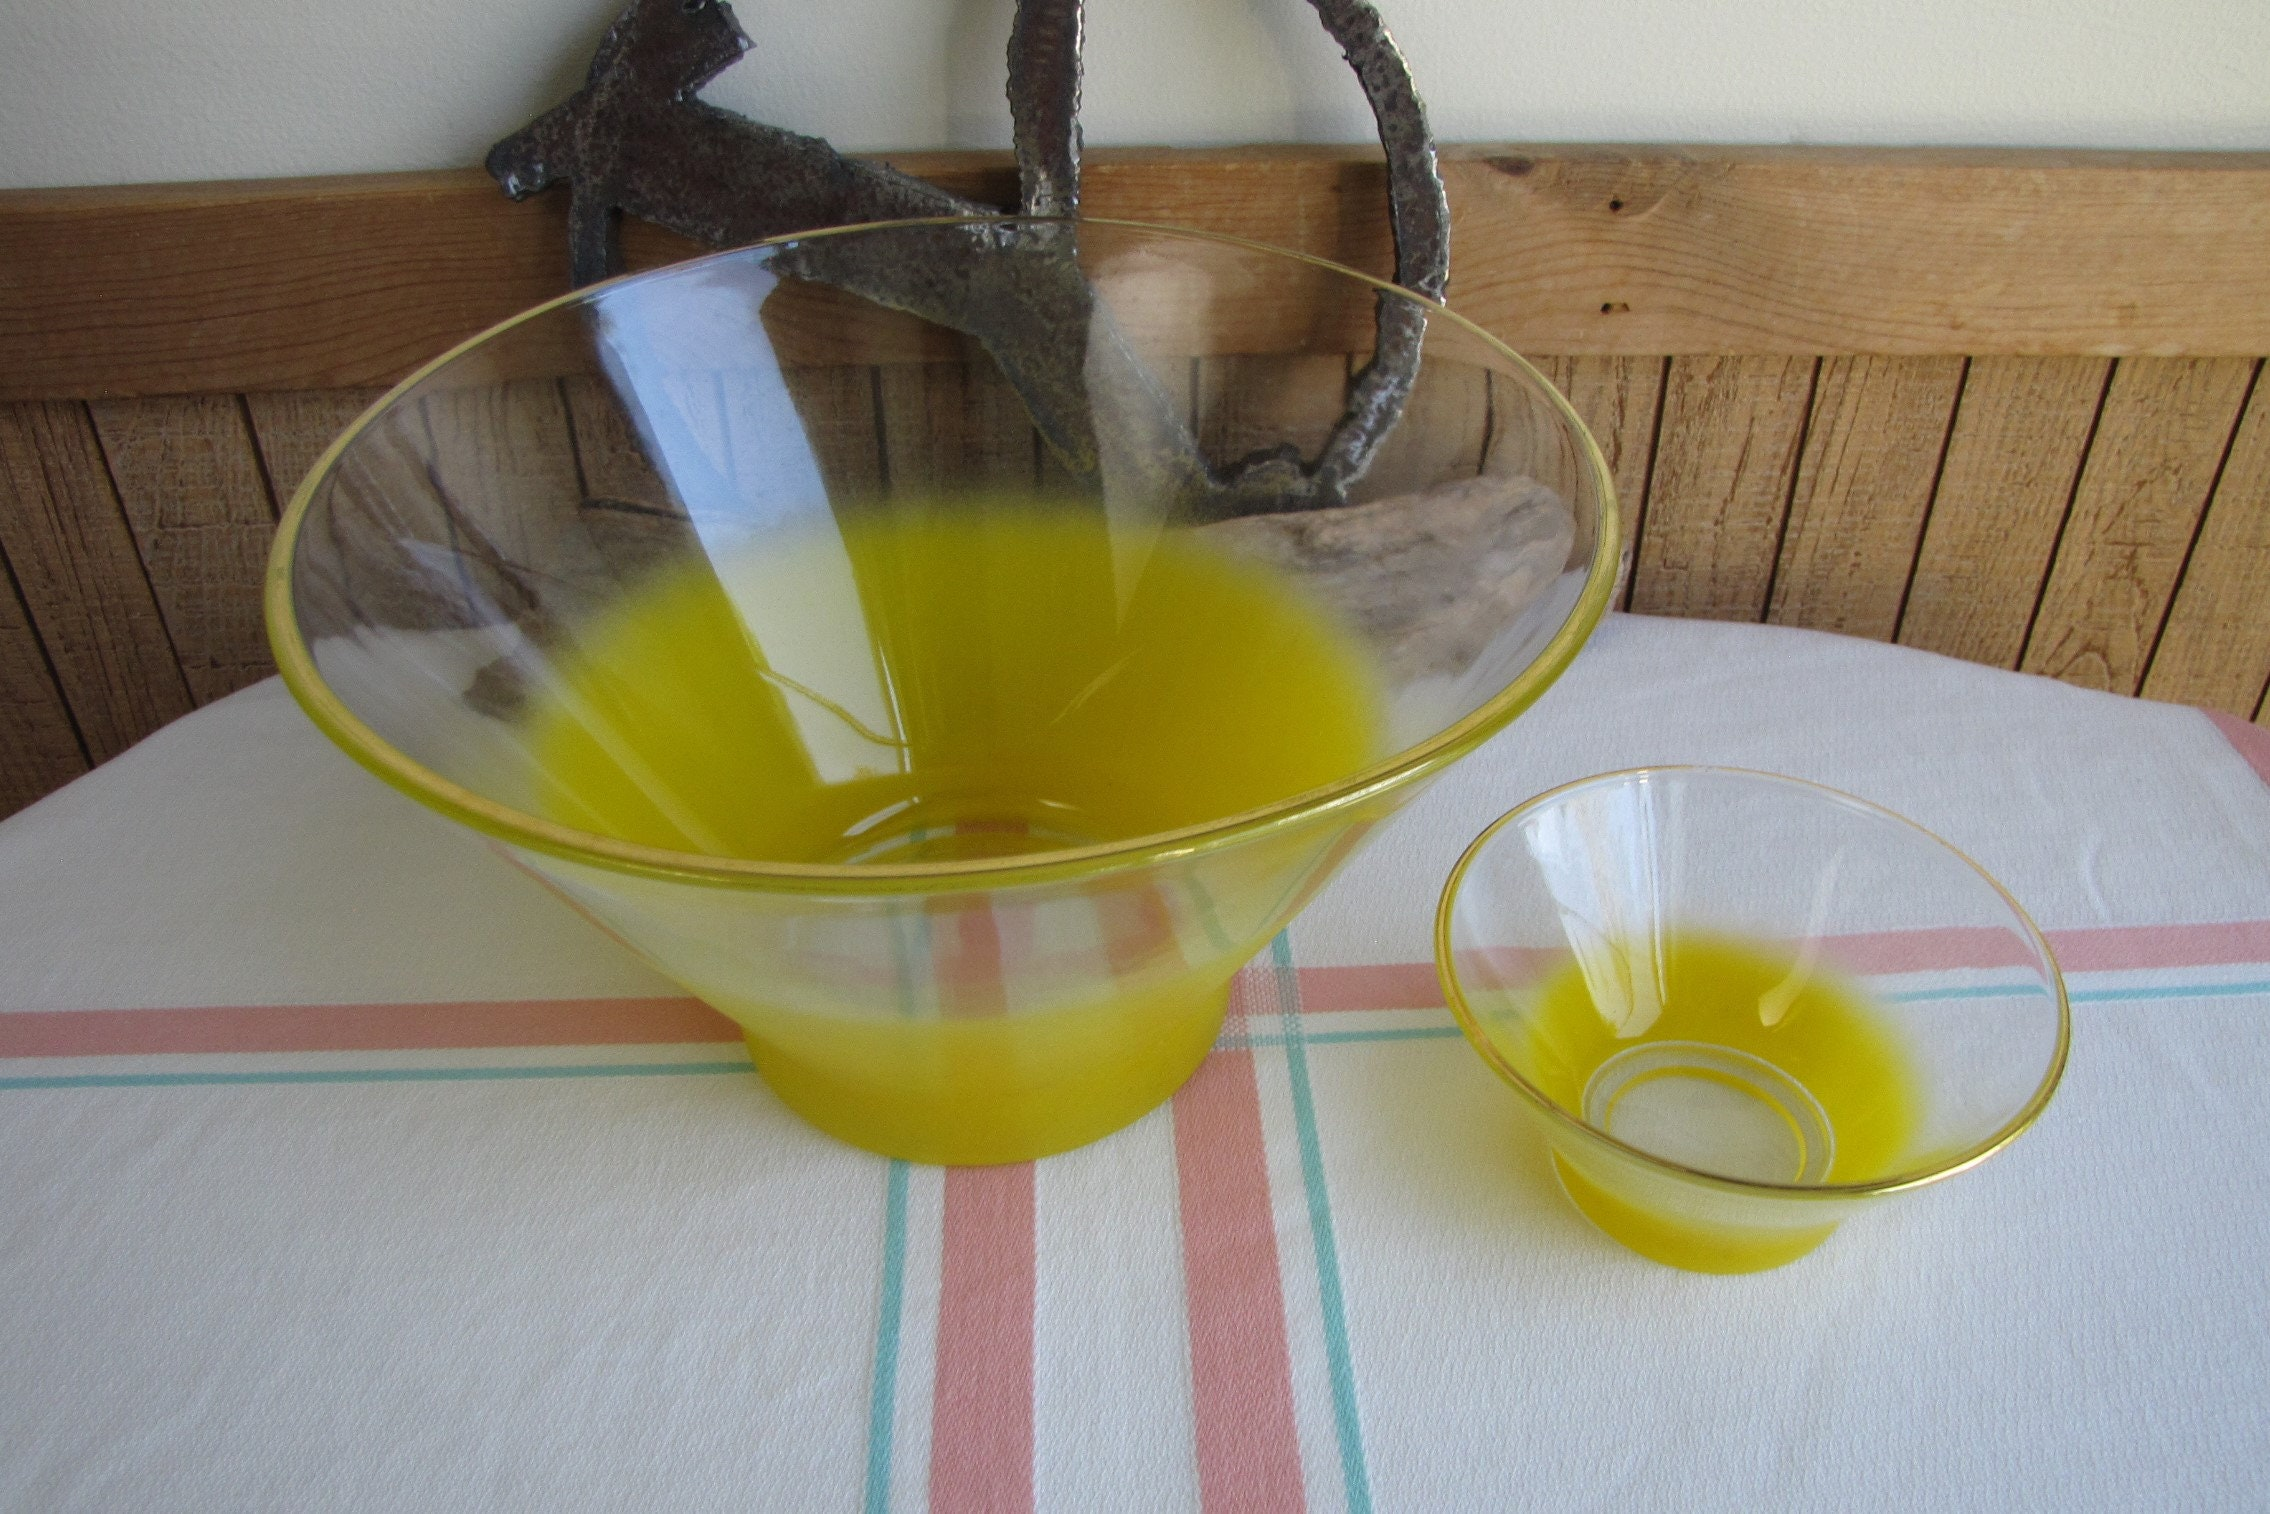 Vintage West Virginia Bright Yellow Blendo Frosted Glass Chip n Dip Bowl Large Gold Rimmed